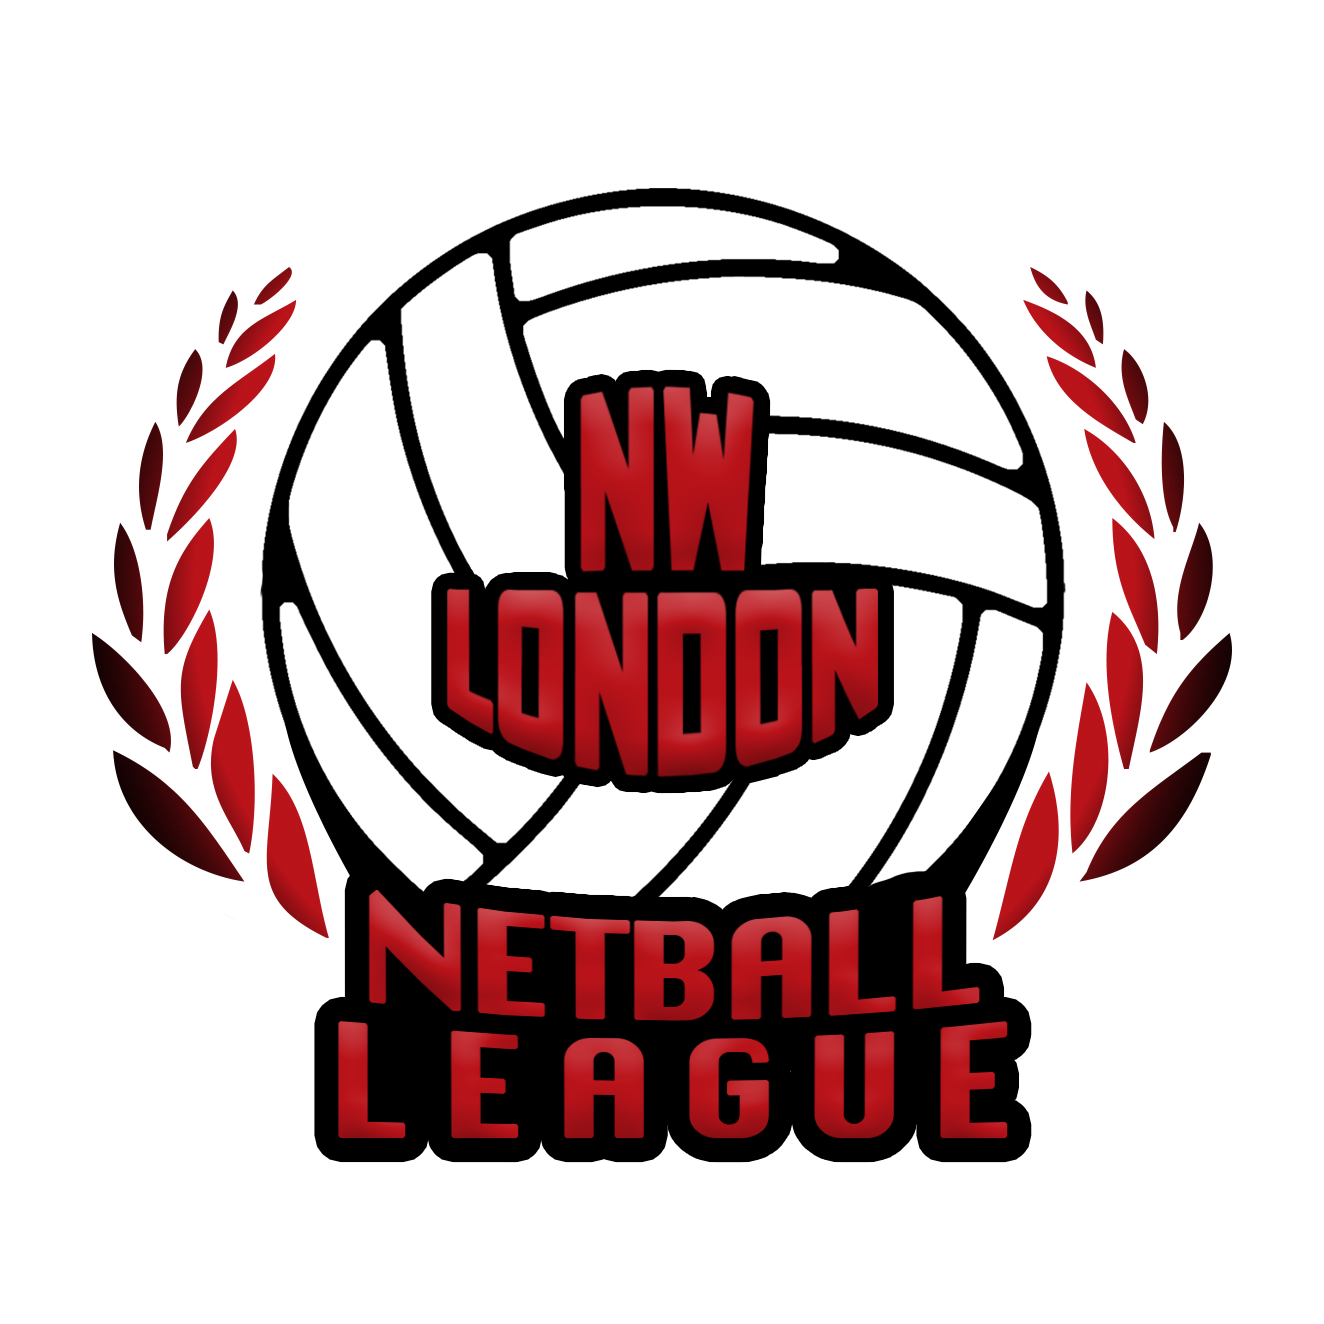 North West London Netball League